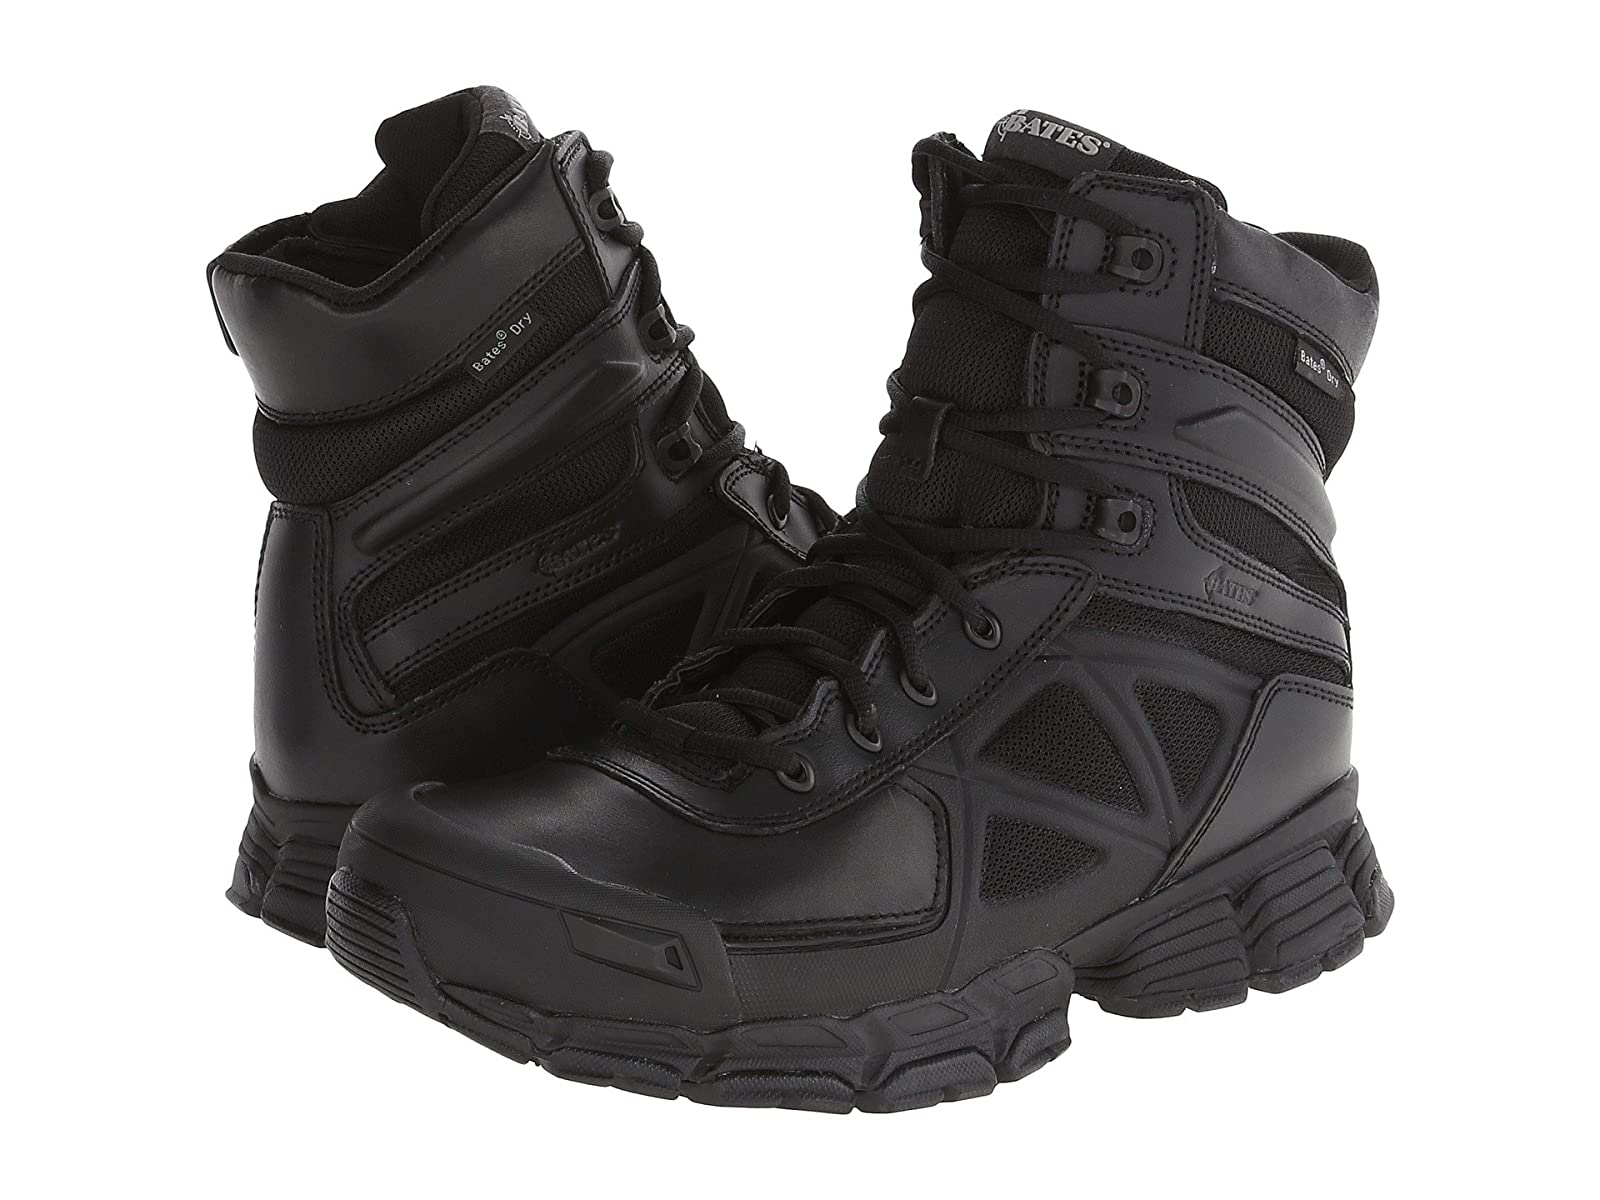 Bates Footwear Velocitor Waterproof ZipSelling fashionable and eye-catching shoes